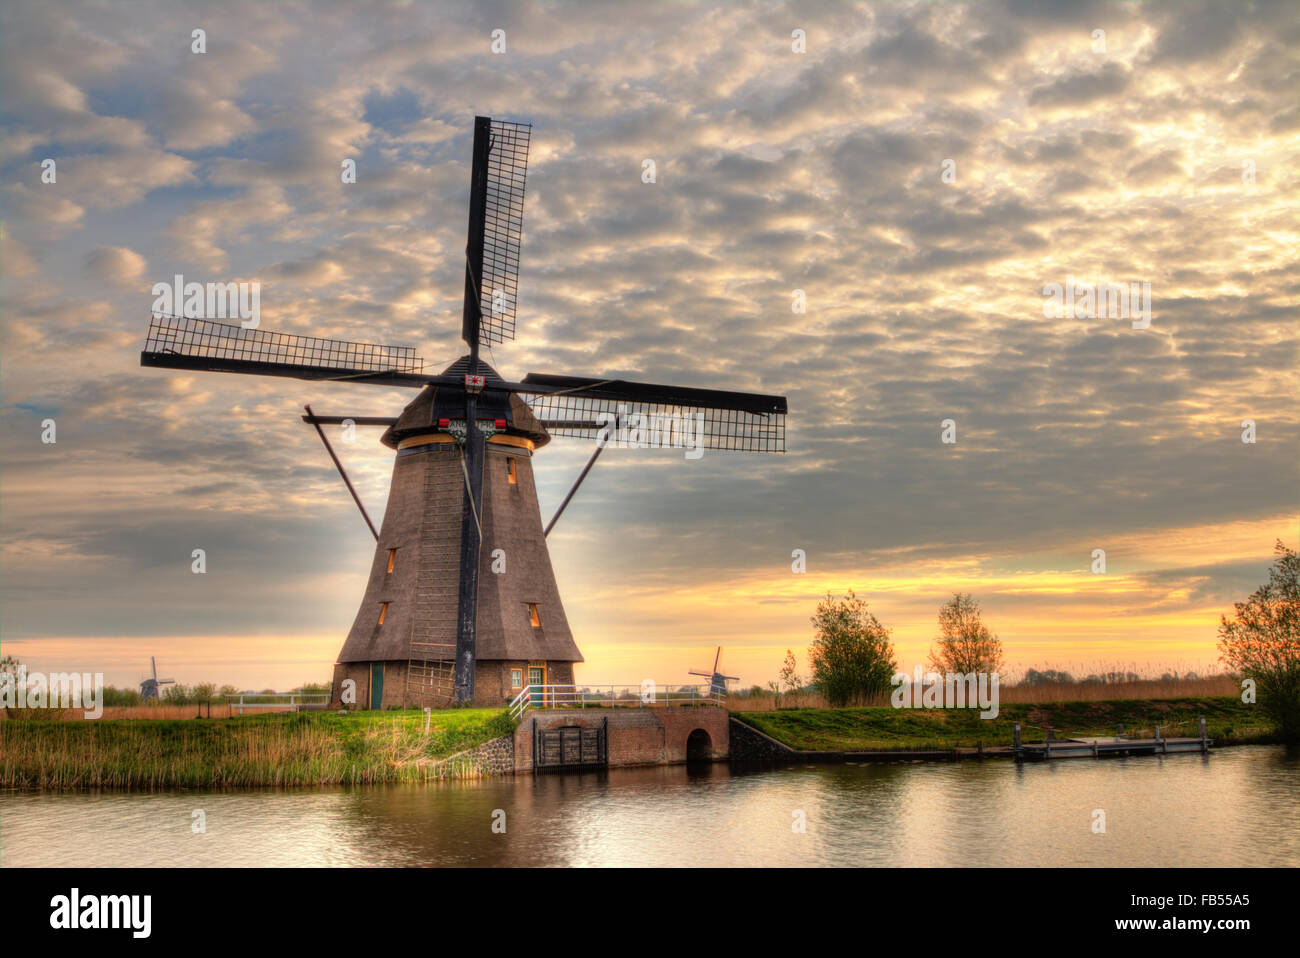 Windmill and water canal in Kinderdijk, Netherlands - Stock Image